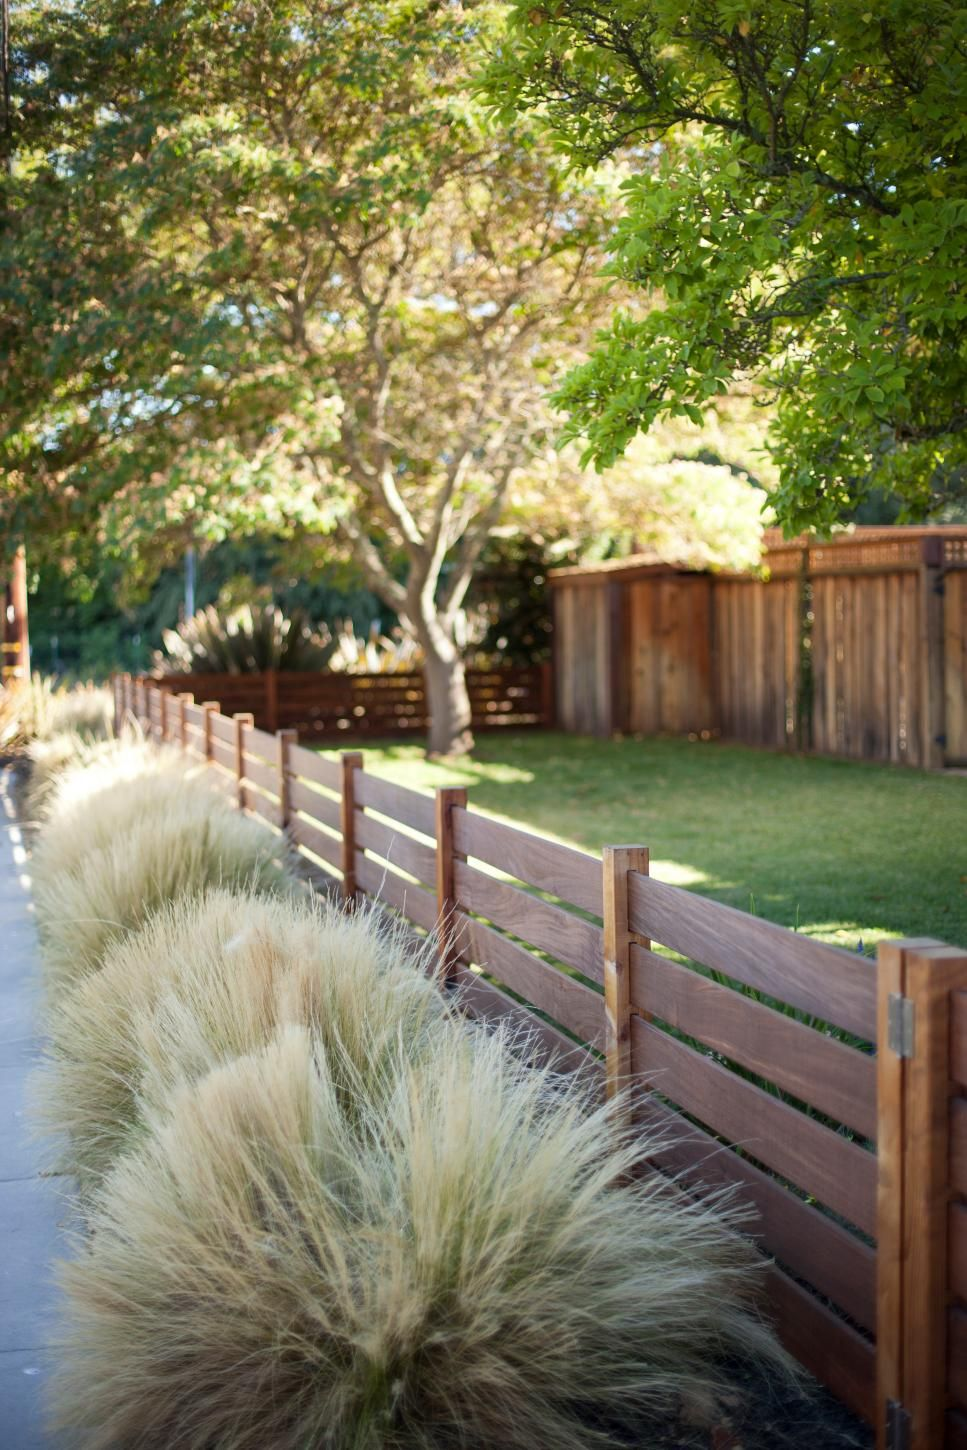 See Creative Spins On The Classic Wooden Fence That Fit Any Garden Style  With Ideas From